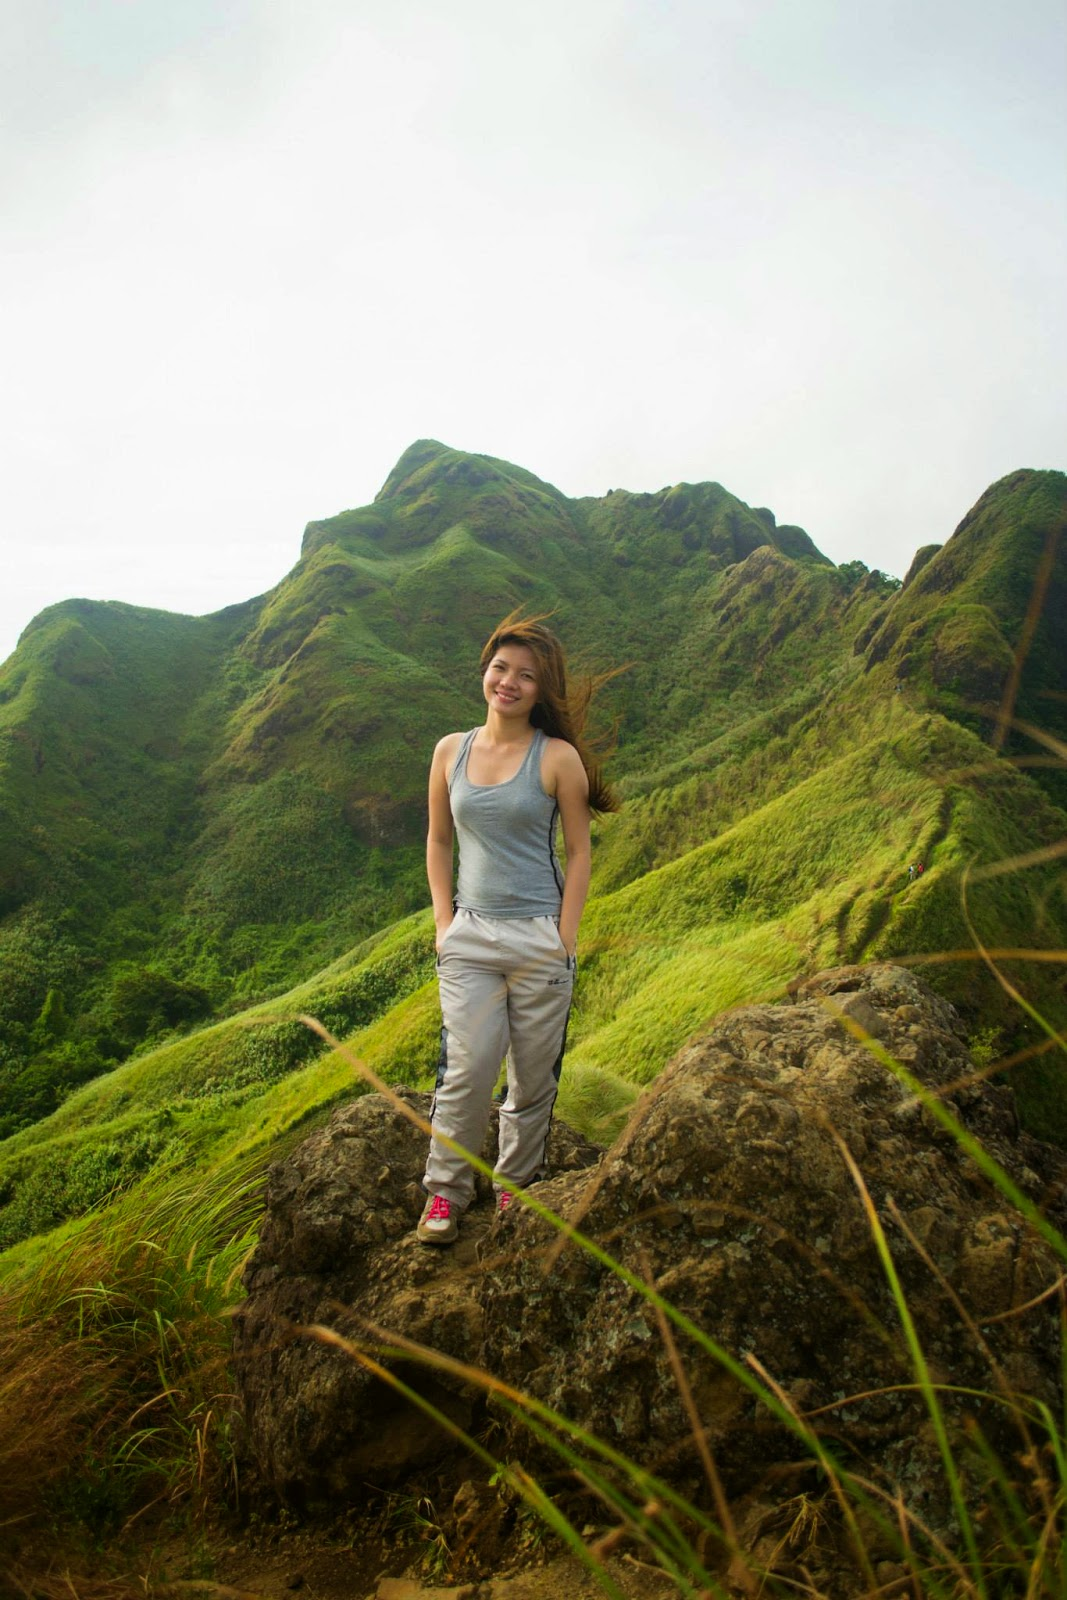 The Pretty Hiker, Cindy Ferrer